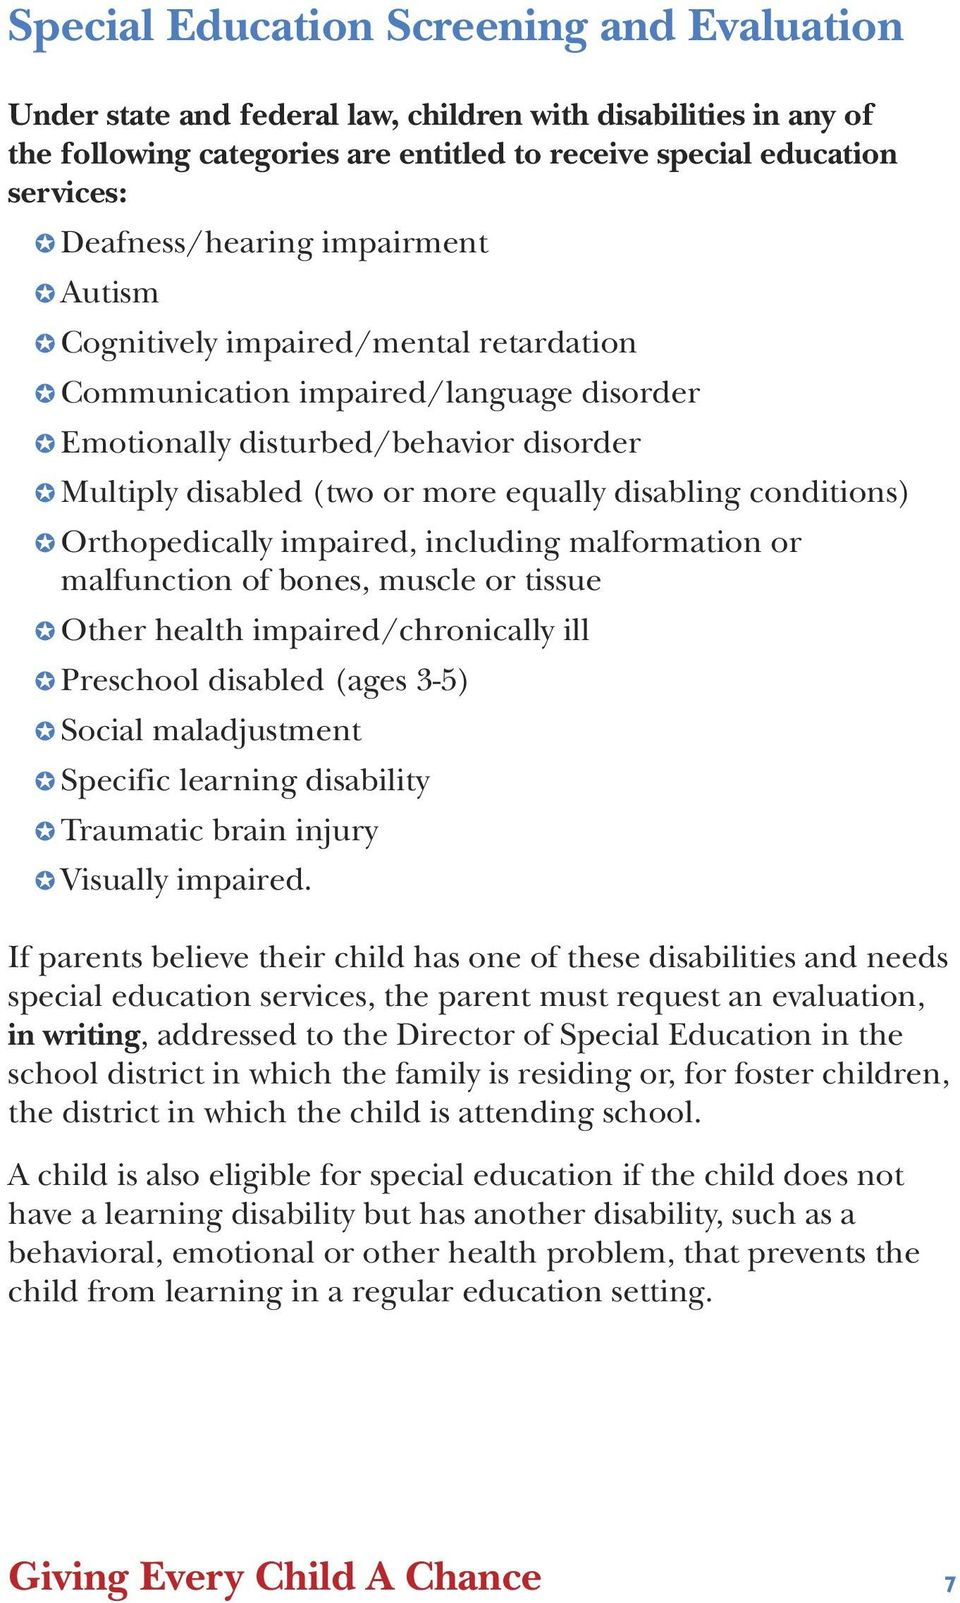 disabling conditions) Orthopedically impaired, including malformation or malfunction of bones, muscle or tissue Other health impaired/chronically ill Preschool disabled (ages 3-5) Social